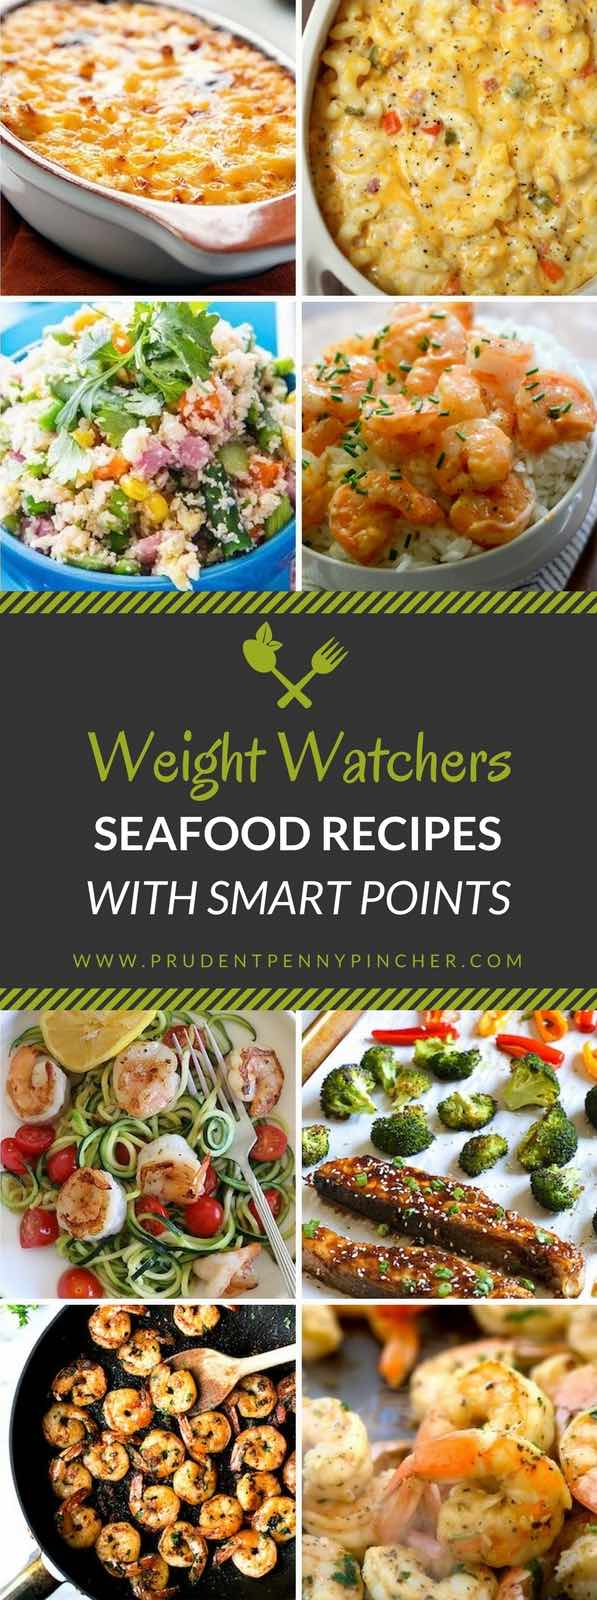 Weight Watcher Seafood Recipes With Smart Points